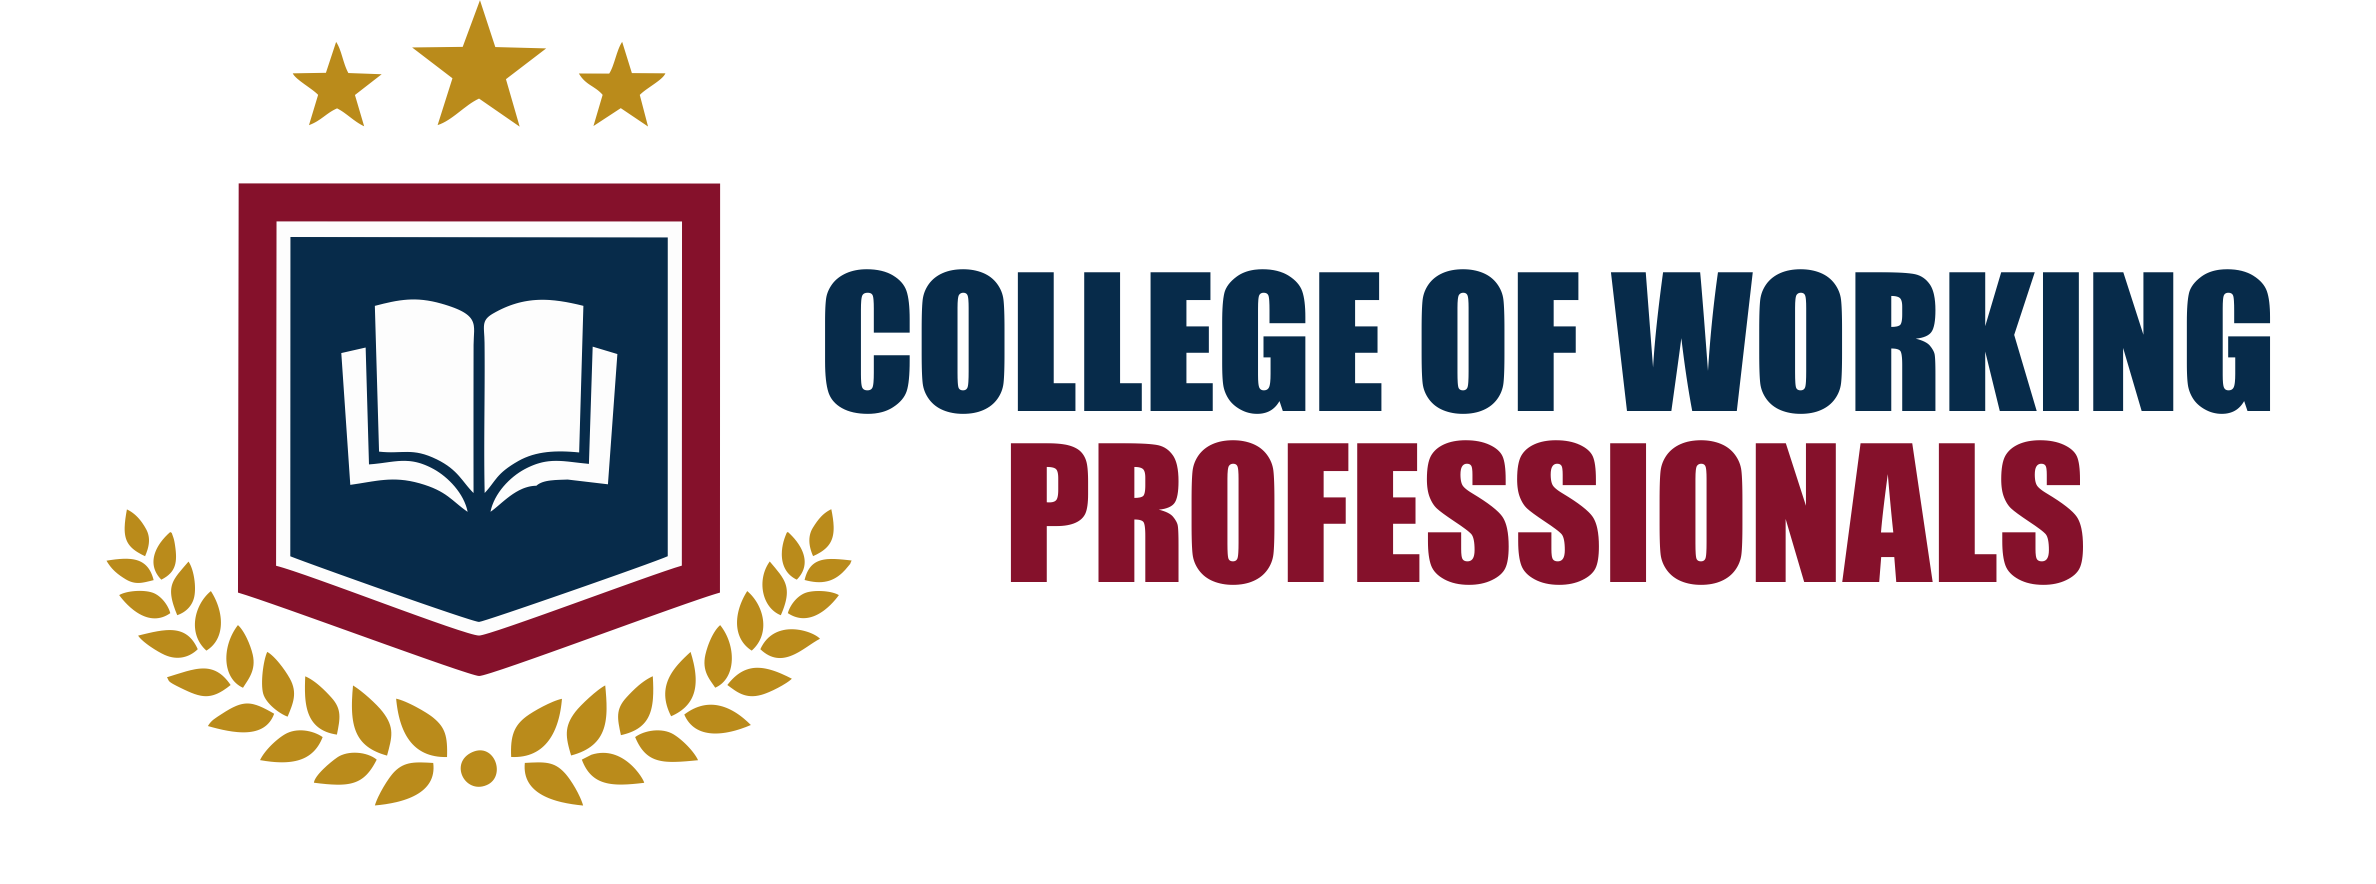 College of Working Professionals